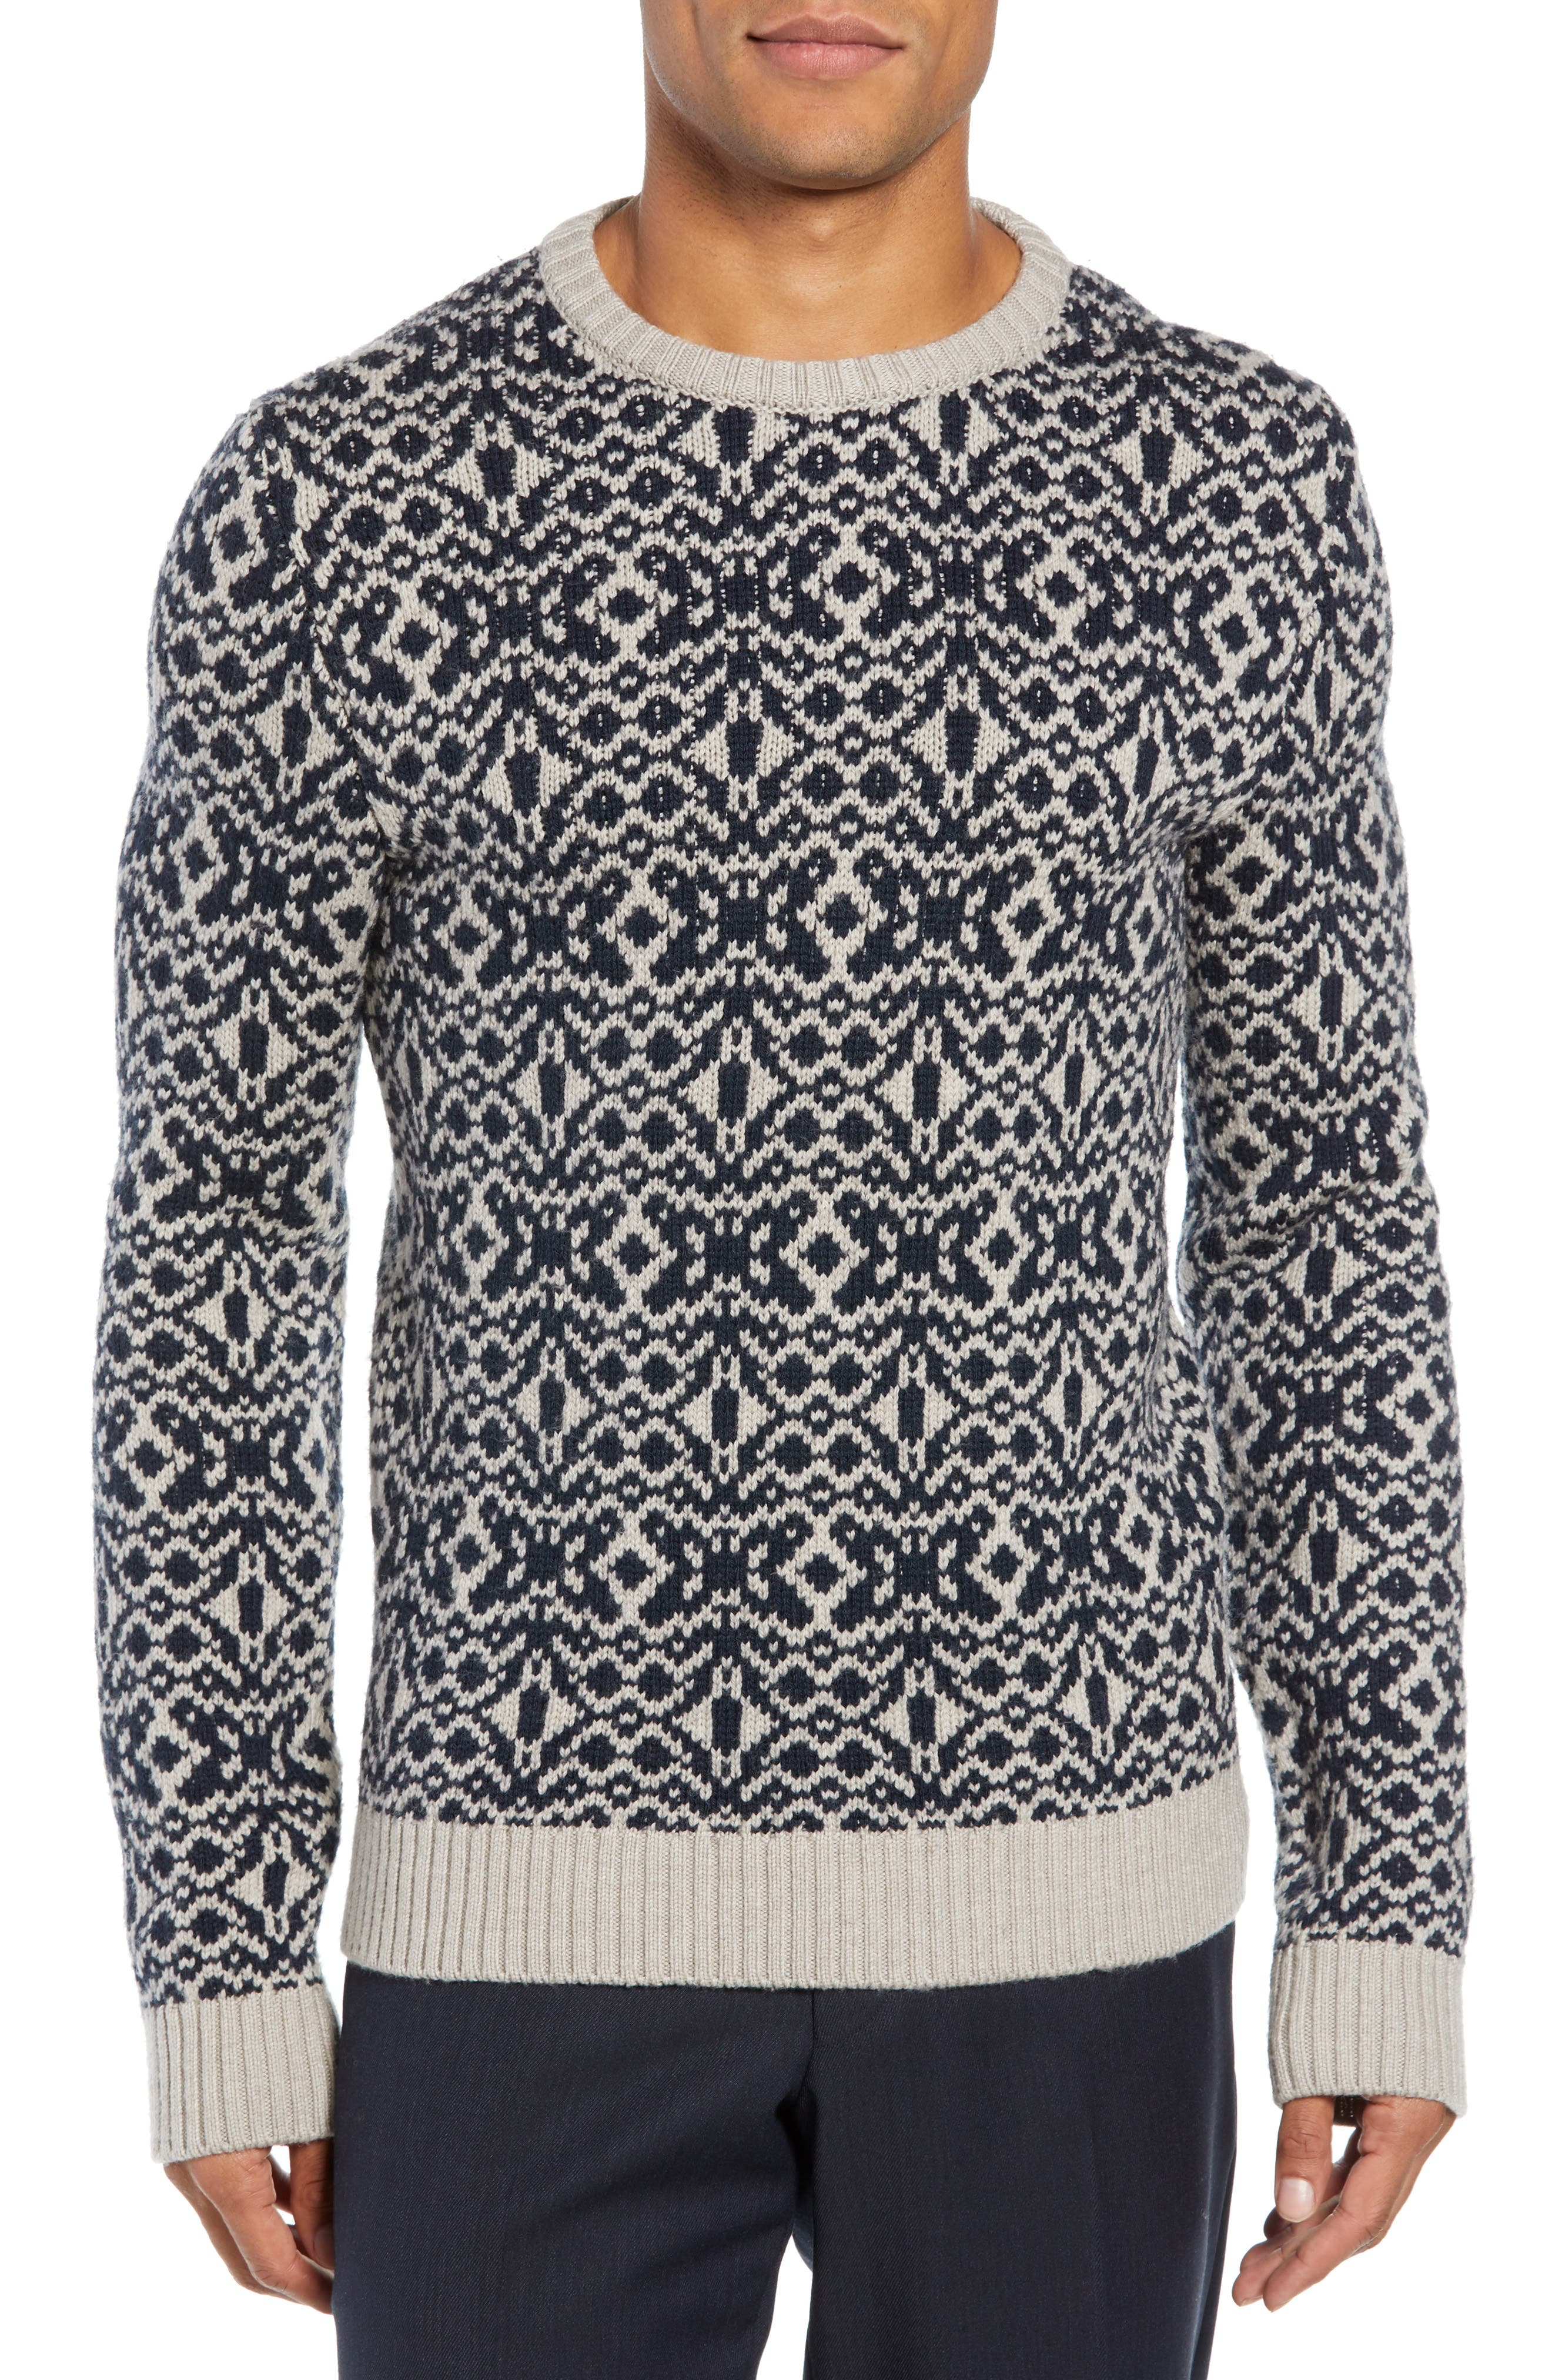 Patterned Wool Crewneck Sweater,                             Main thumbnail 1, color,                             STONE